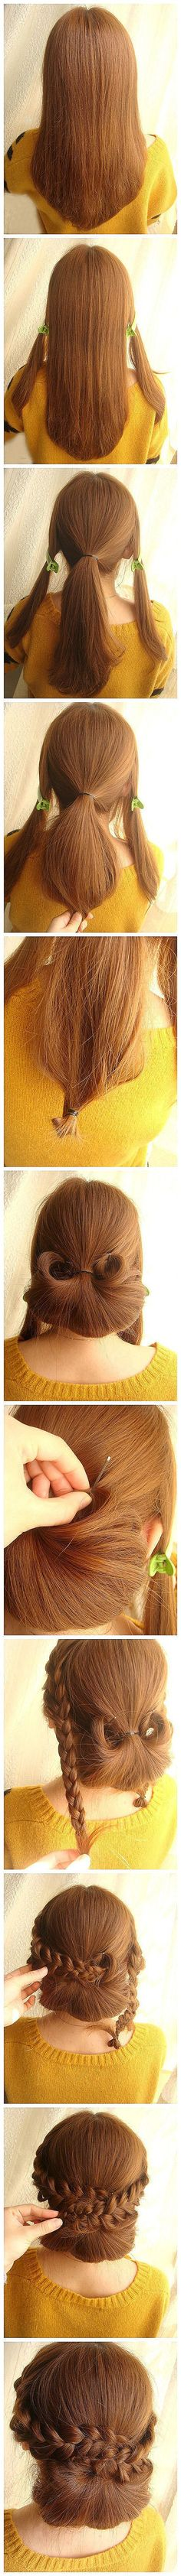 17 Ways to Make the Vintage Hairstyles - Pretty Designs The most beautiful hair ideas, the most tren Up Hairstyles, Pretty Hairstyles, Wedding Hairstyles, Civil War Hairstyles, Easy Vintage Hairstyles, Fishtail Hairstyles, Victorian Hairstyles, Pelo Vintage, Great Hair